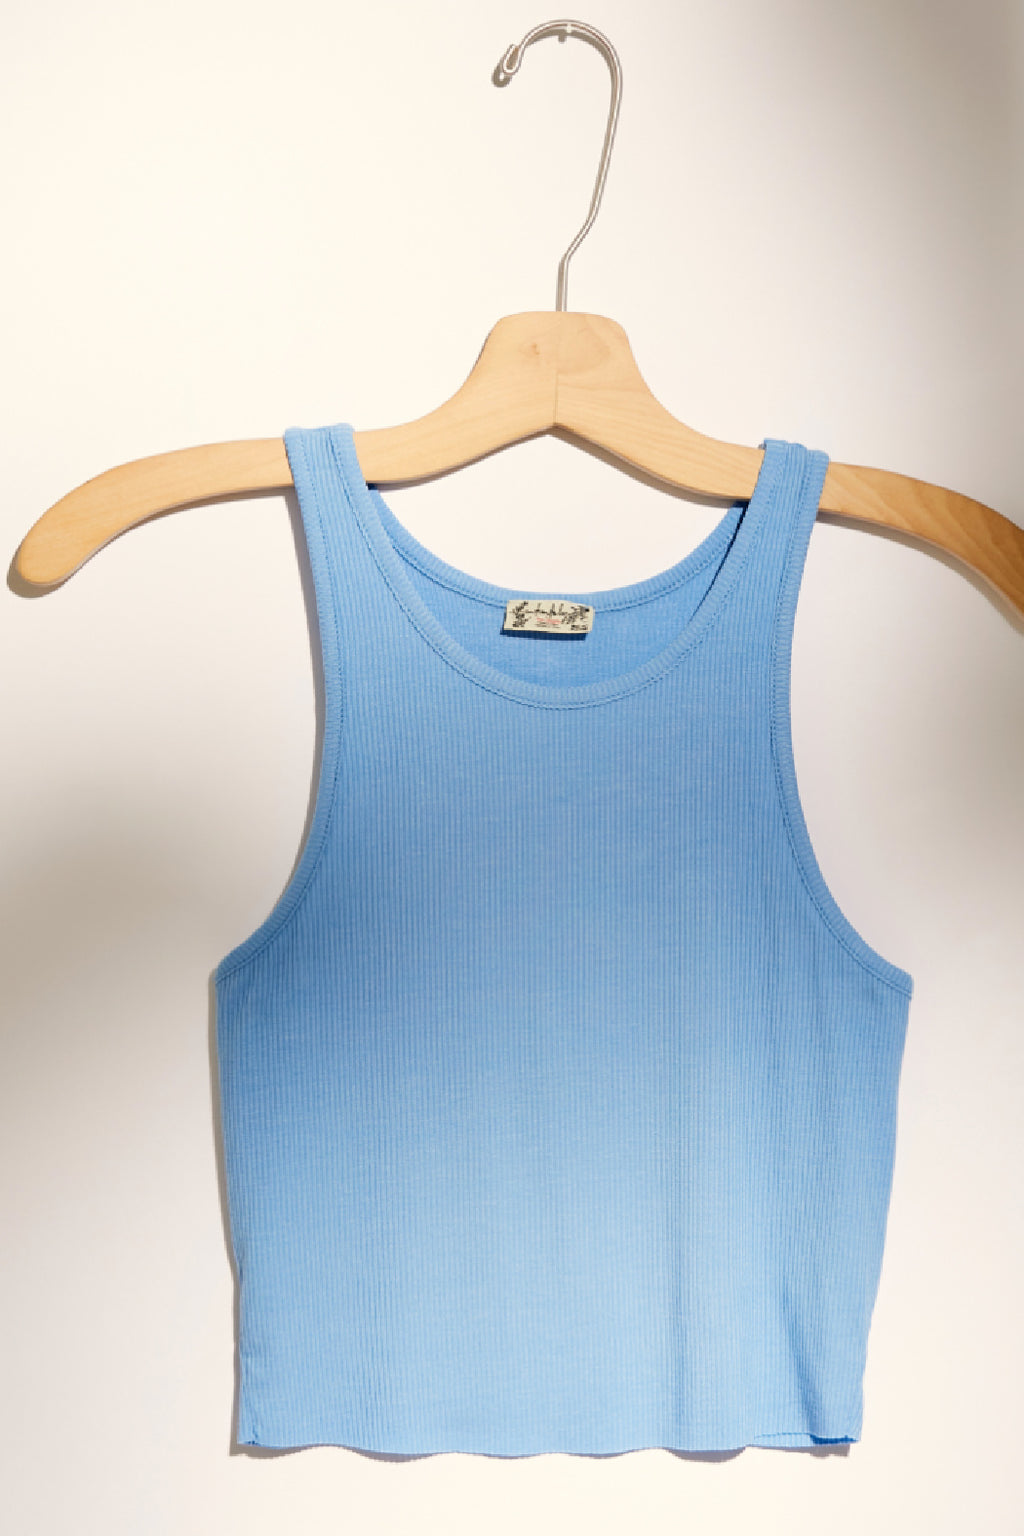 Free People High Neck Ribbed Crop Tank - Sky Blue